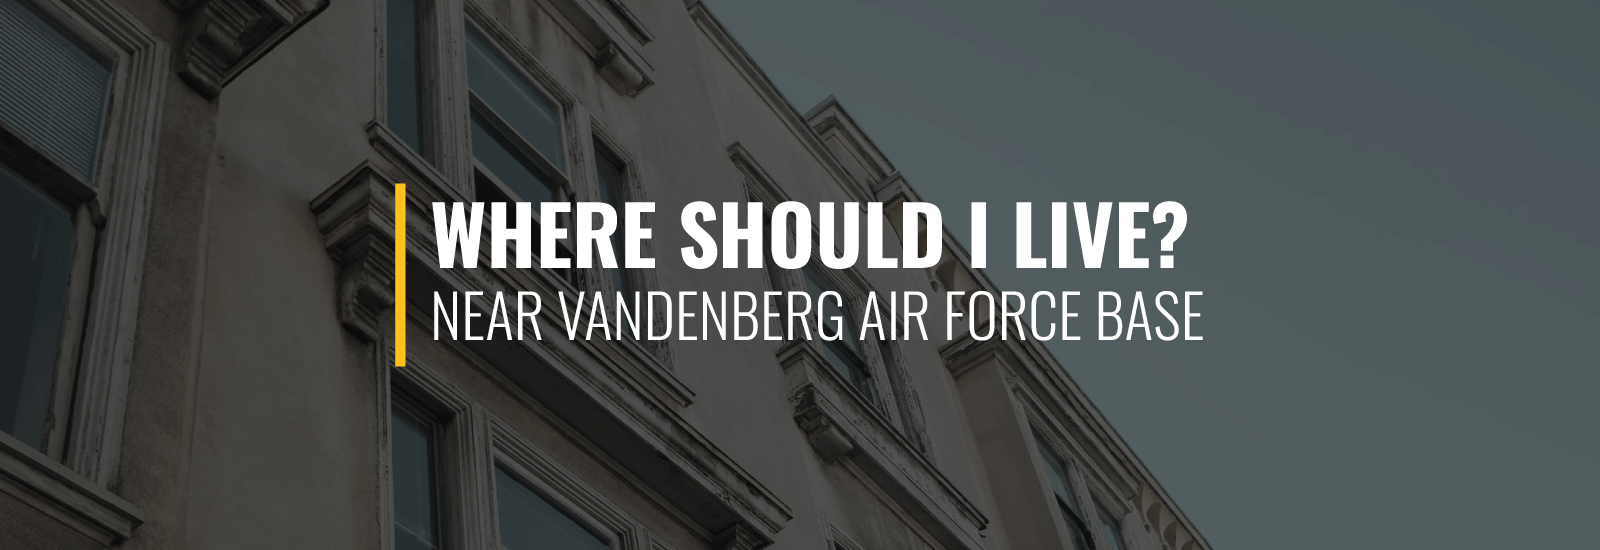 Where Should I Live Near Vandenberg AFB?